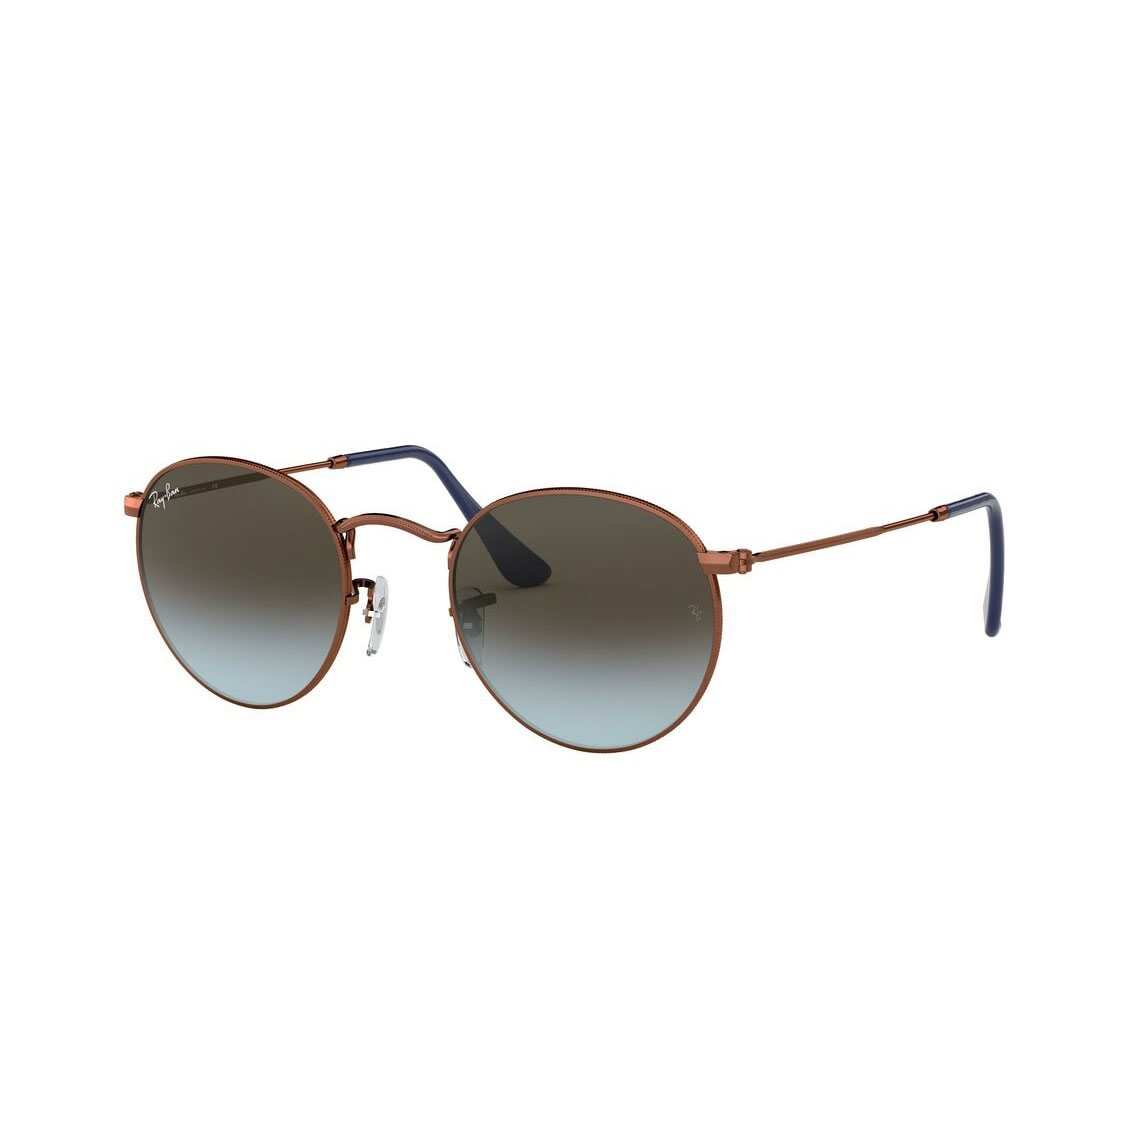 Ray-Ban Round metal RB3447 900396 50